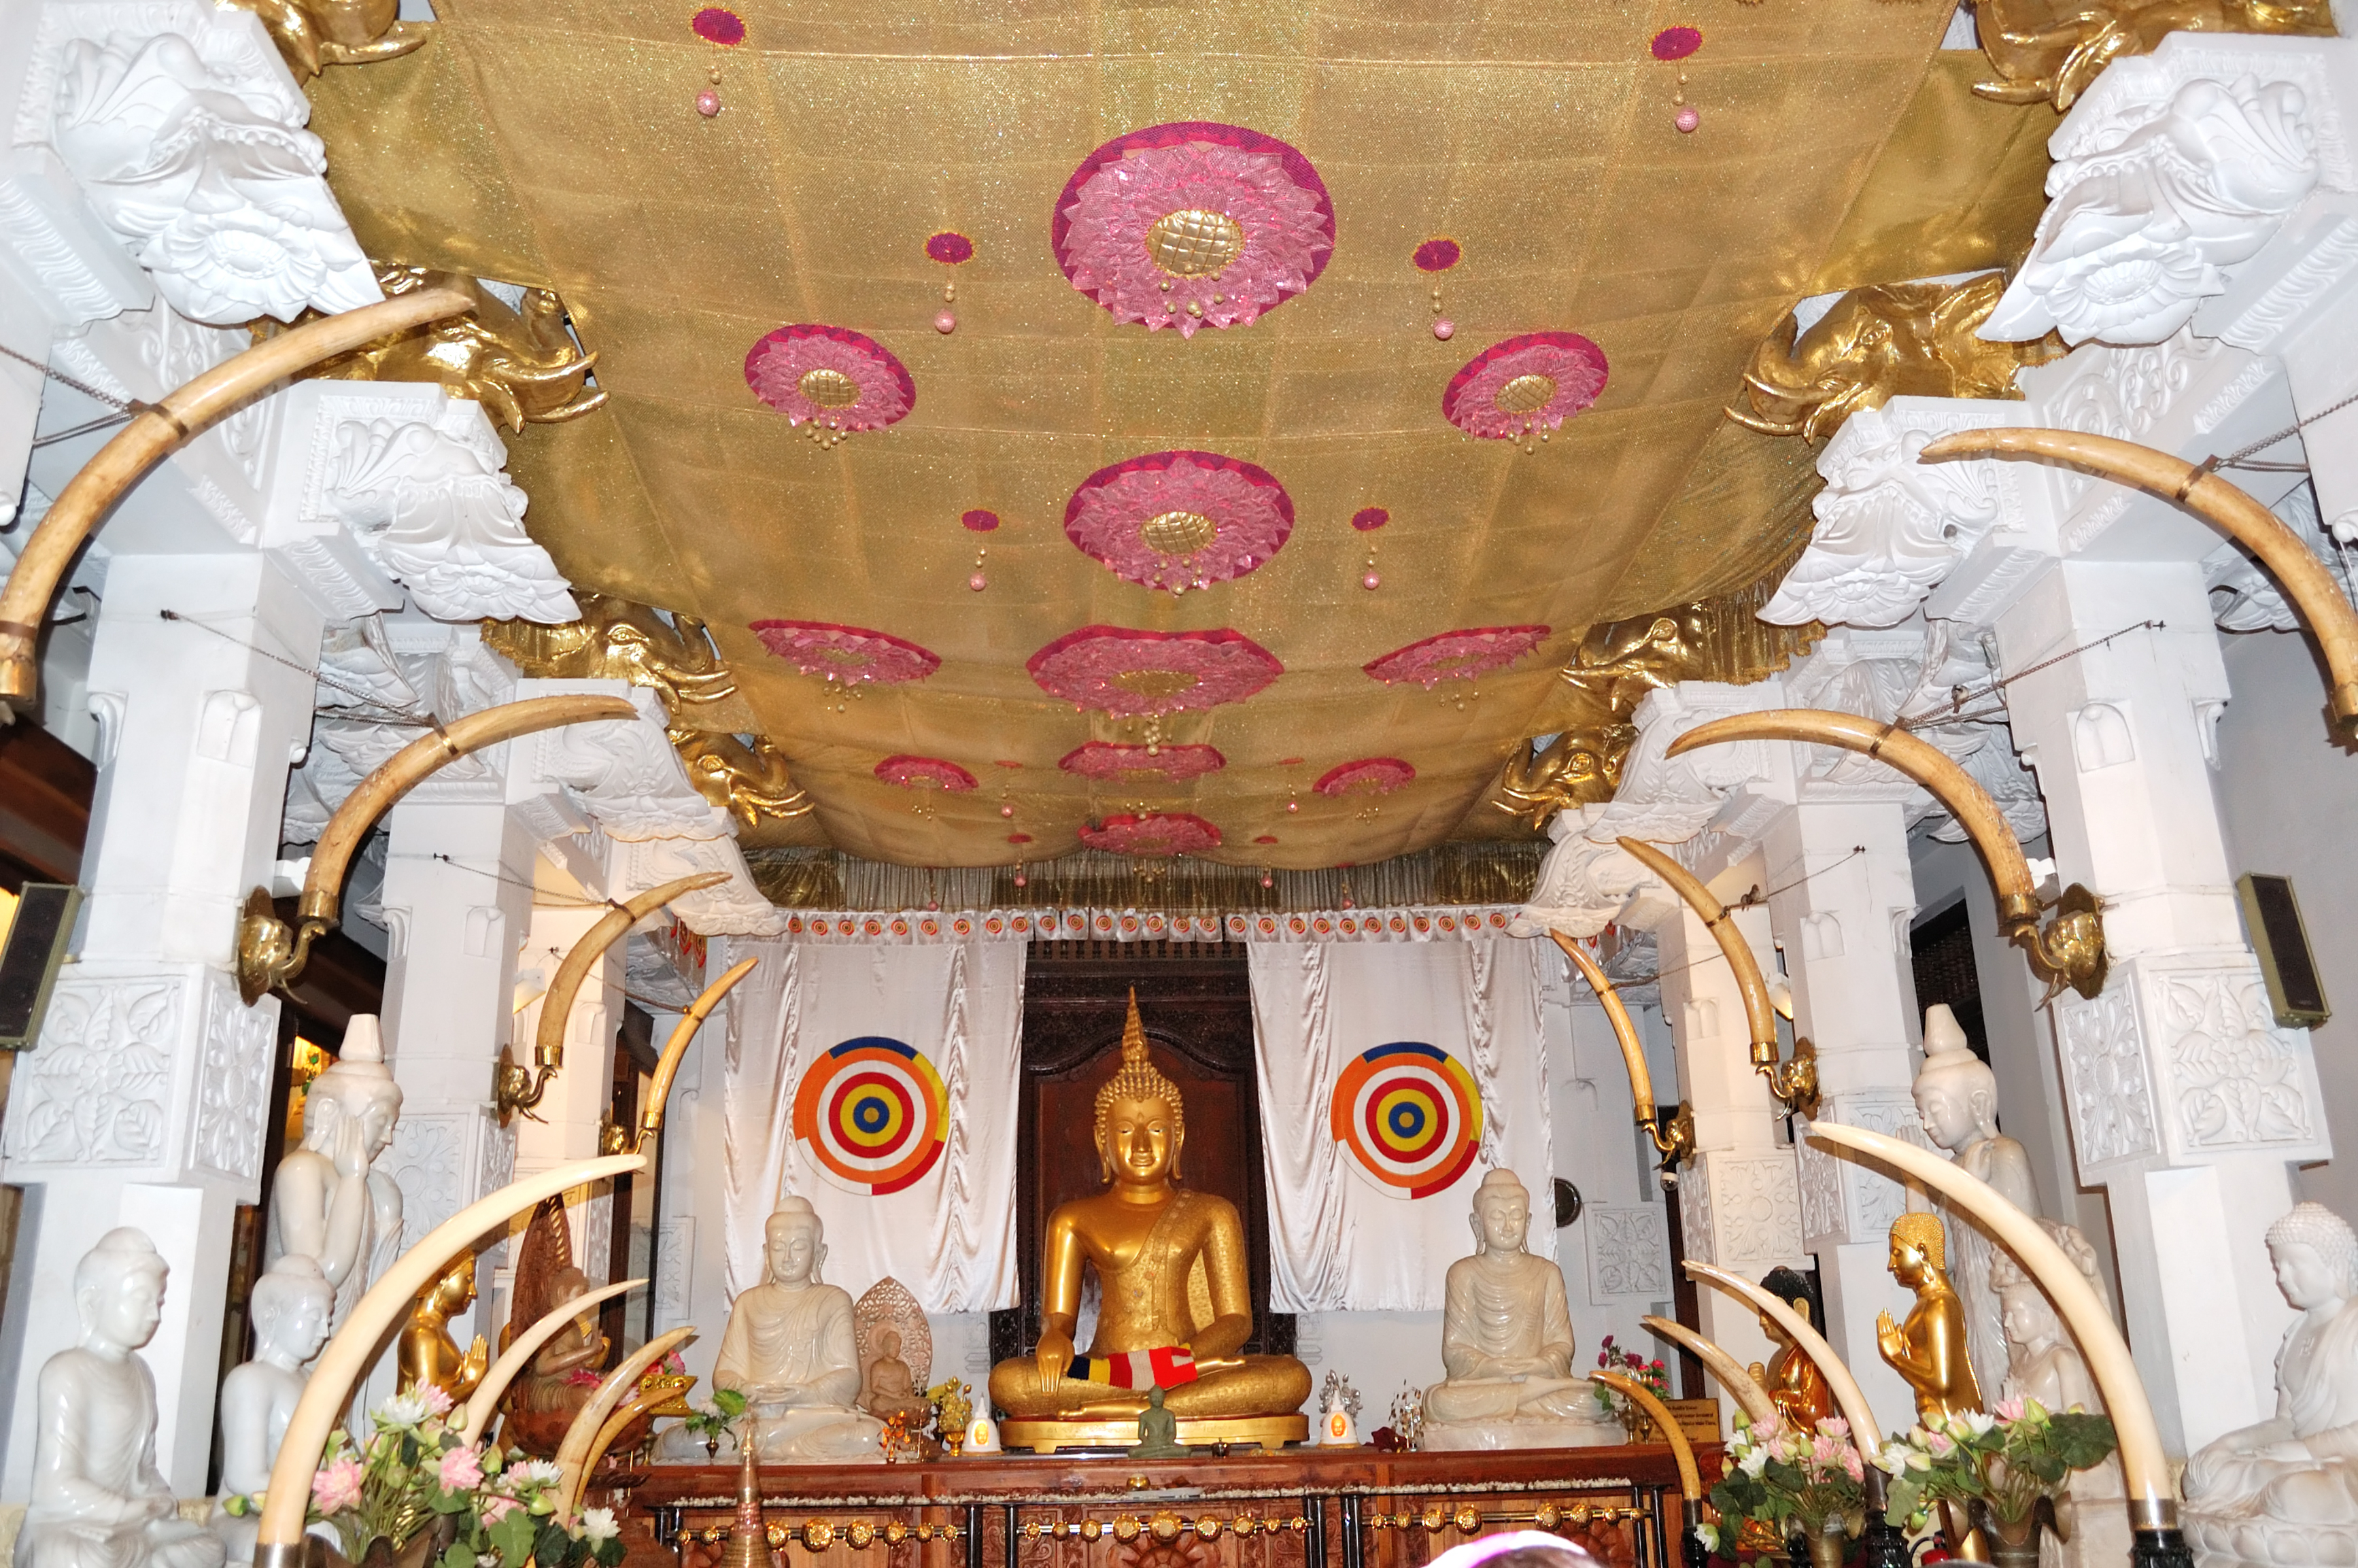 Interior Sacred Tooth Relic Temple, focus on sri lanka